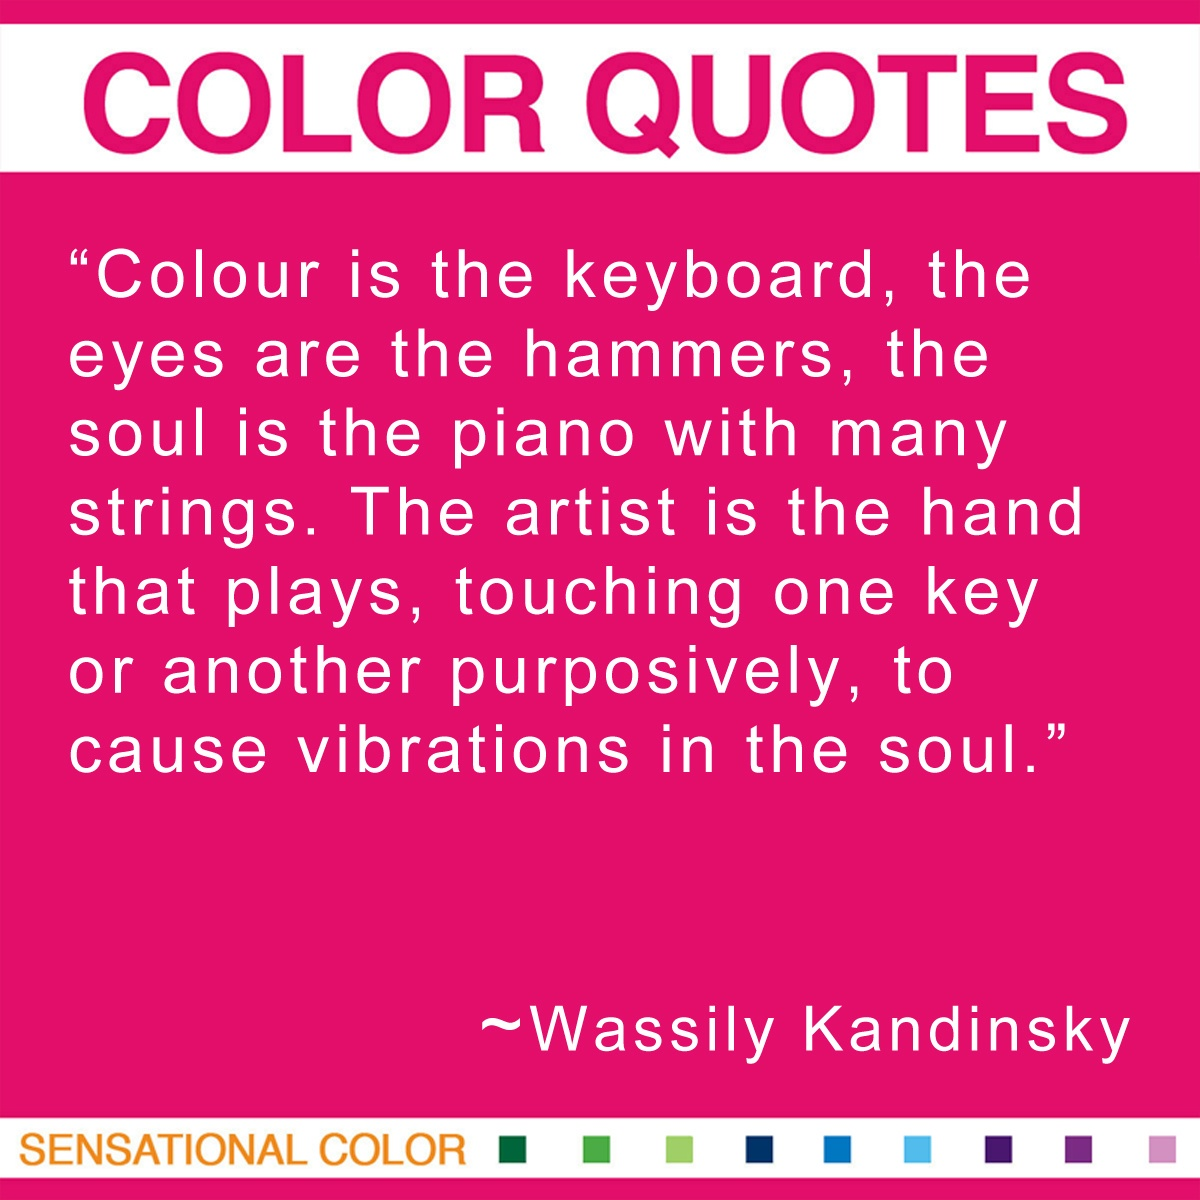 """Colour is the keyboard, the eyes are the hammers, the soul is the piano with many strings. The artist is the hand that plays, touching one key or another purposively, to cause vibrations in the soul.""  - Wassily Kandinsky"